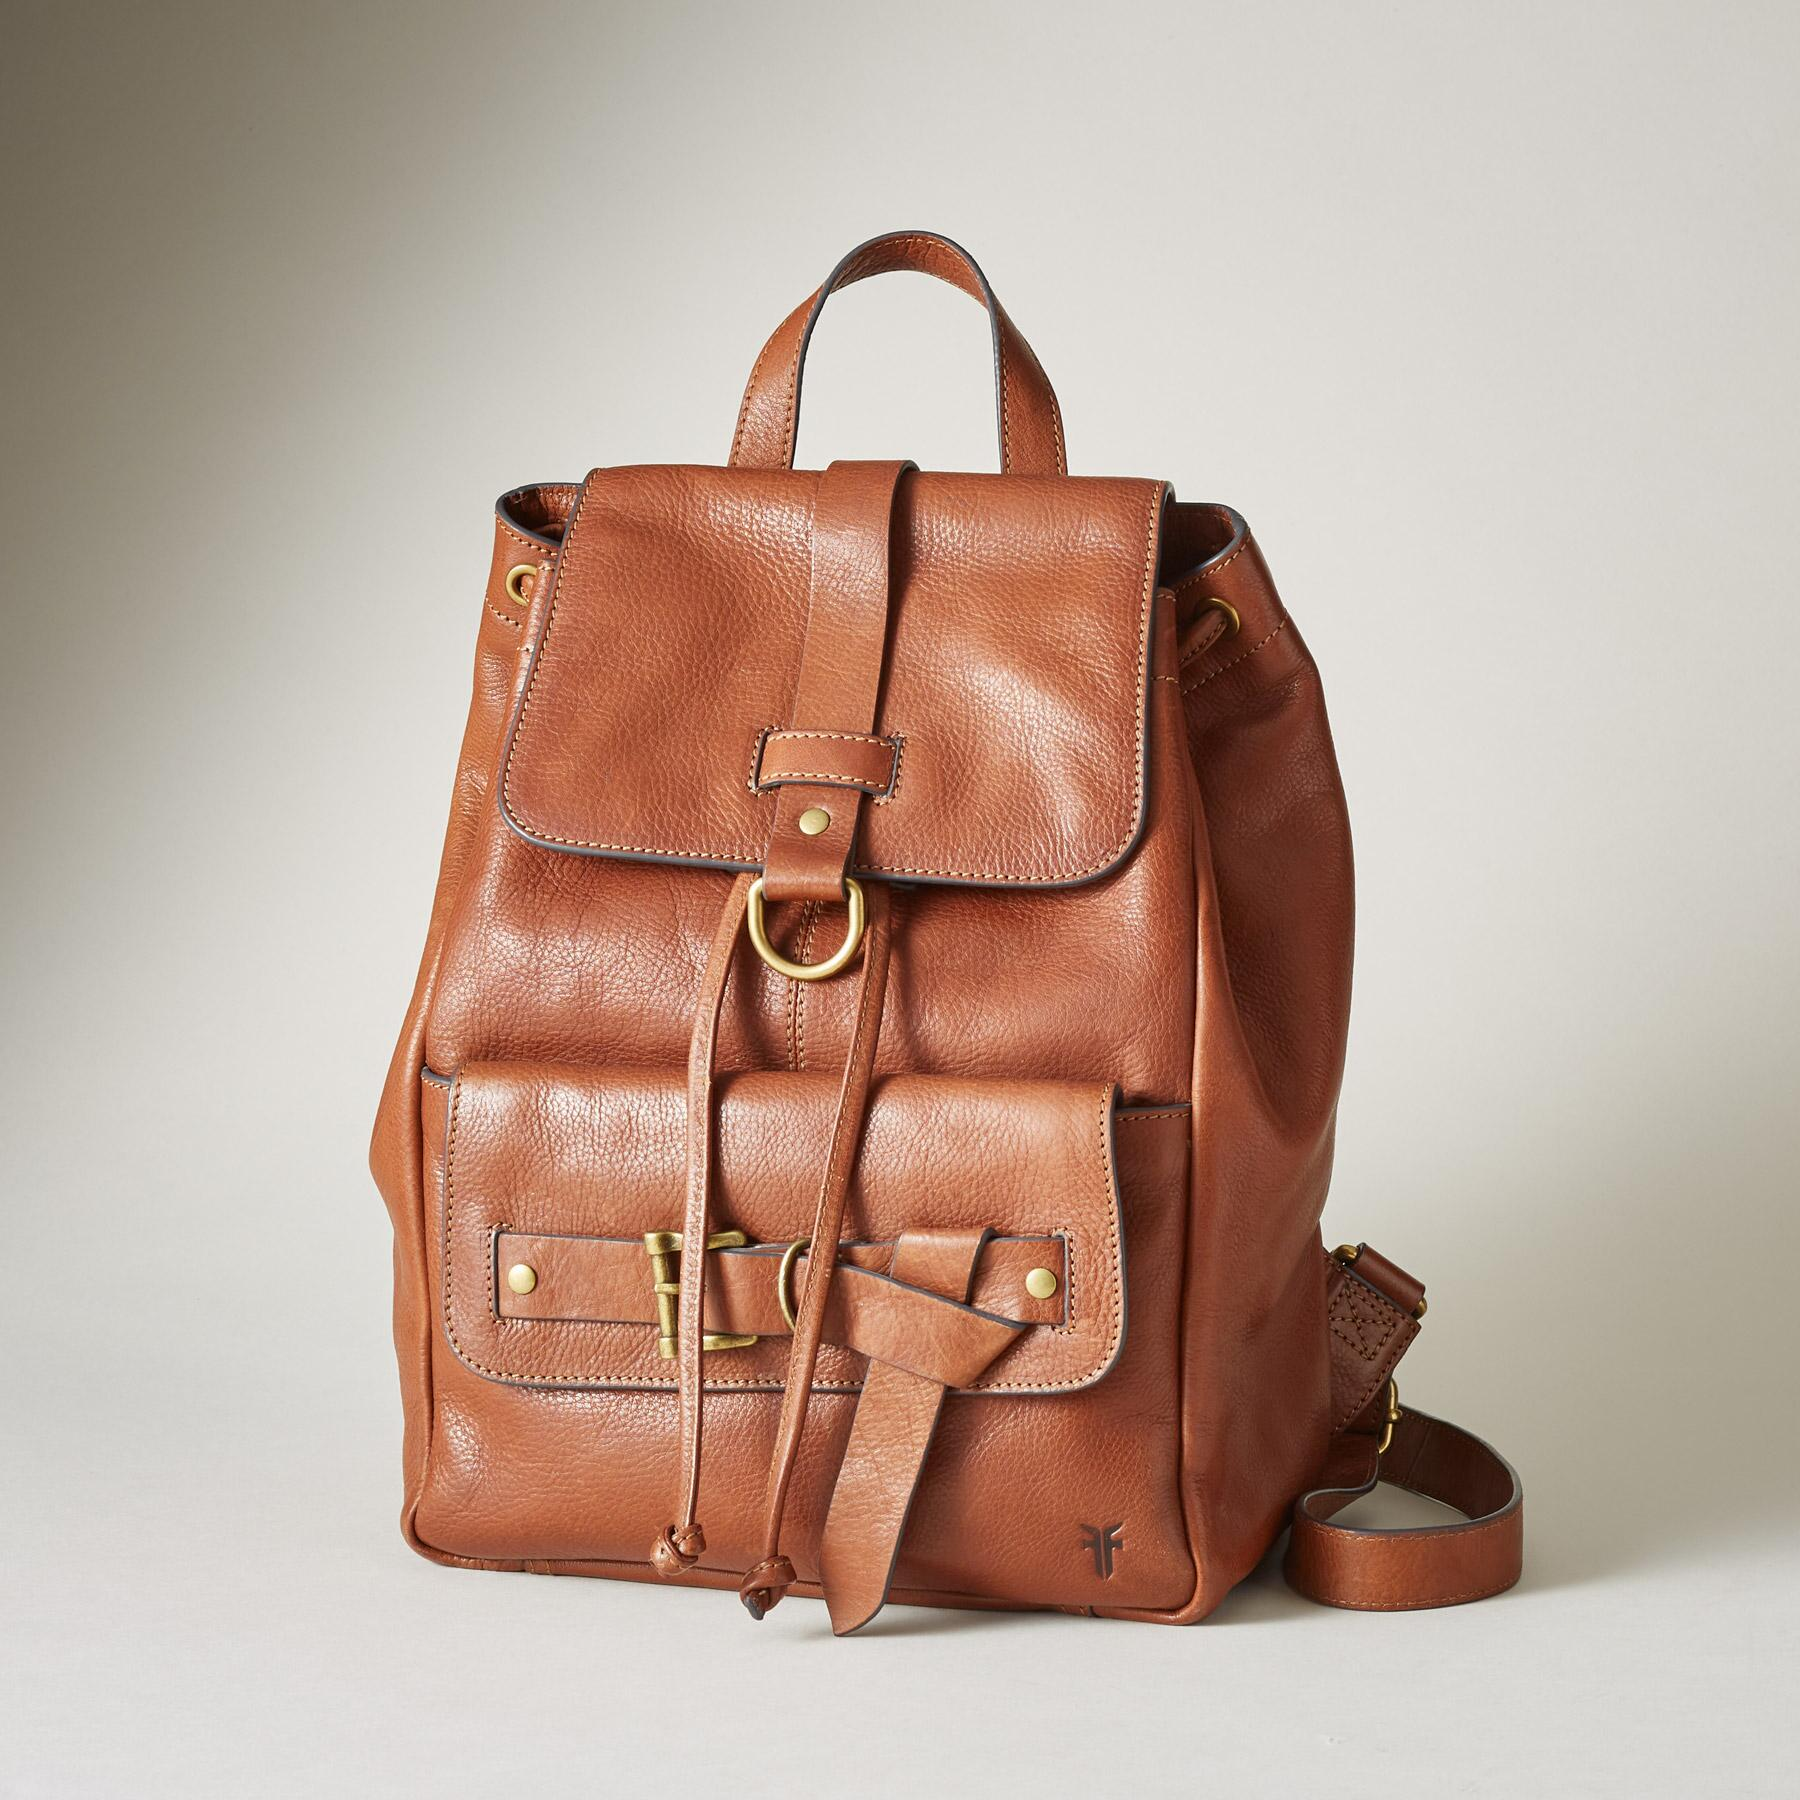 Kayla Backpack By Frye®: View 1